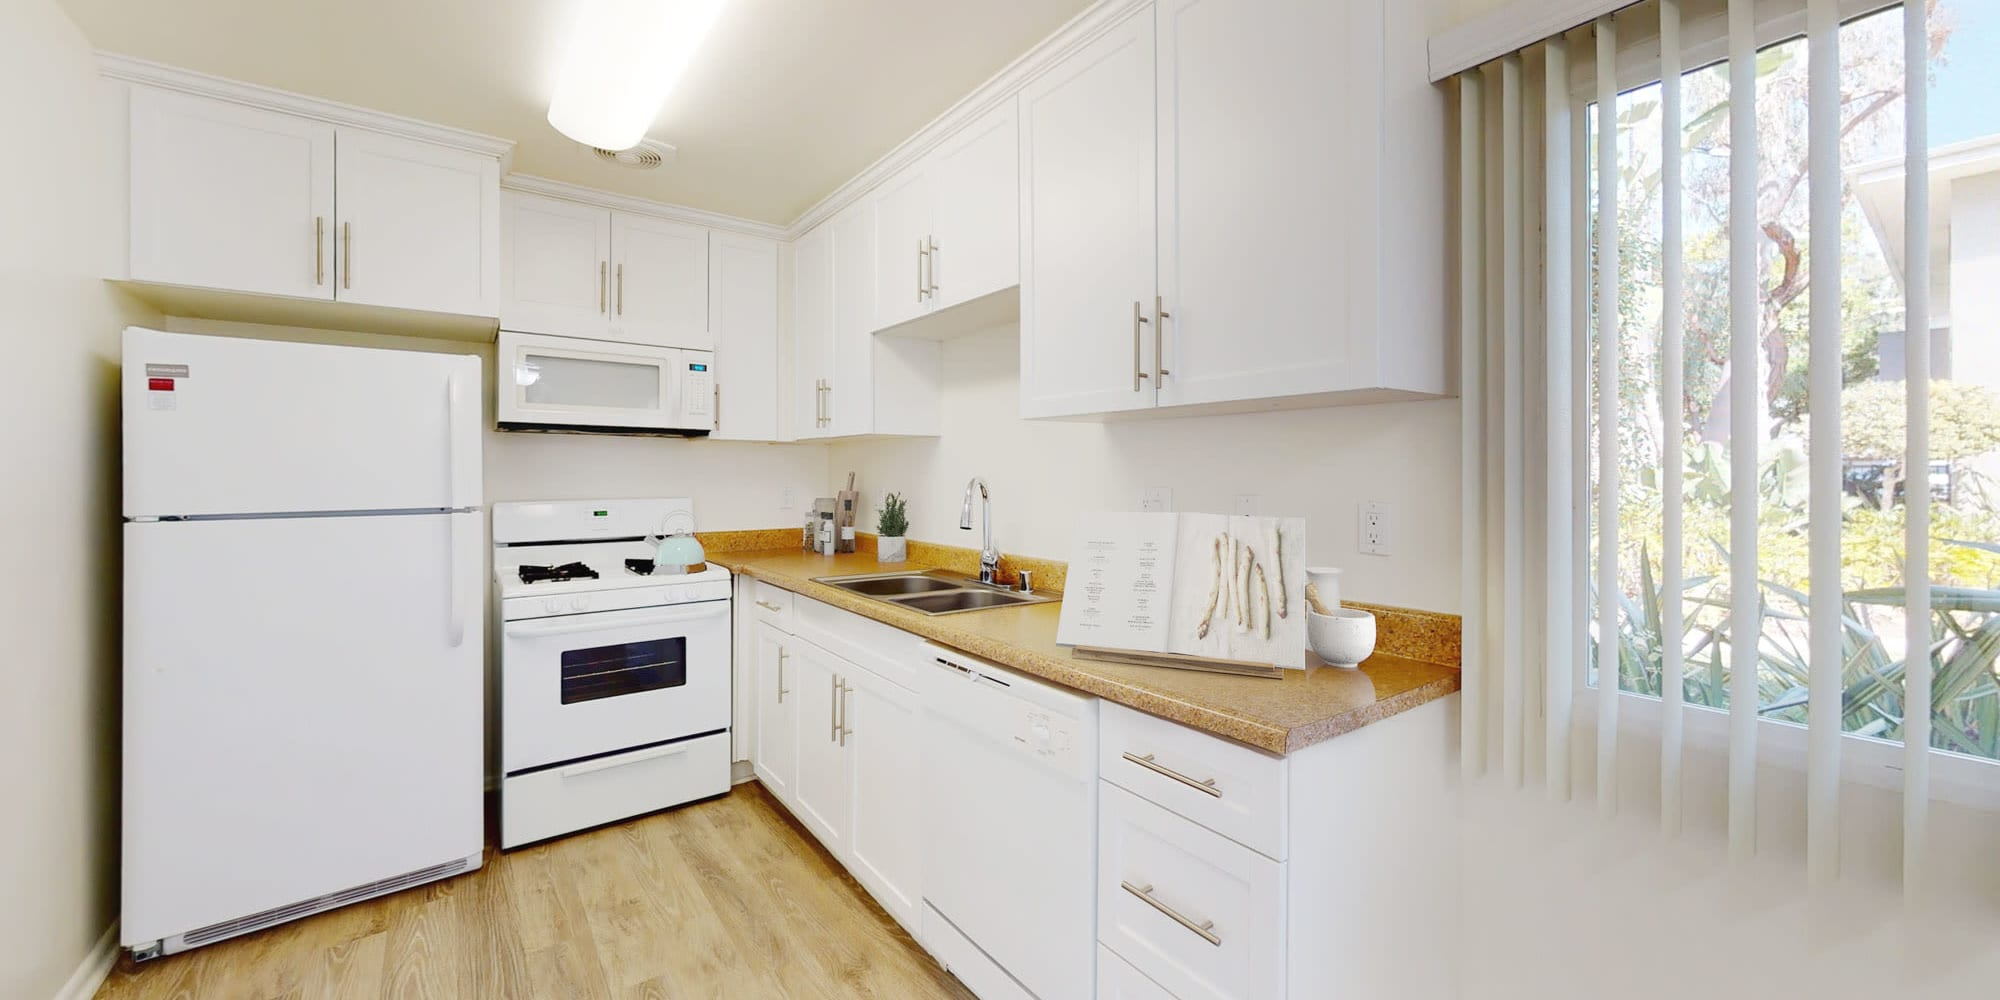 Open kitchen of a two bedroom apartment at West Park Village in Los Angeles, California